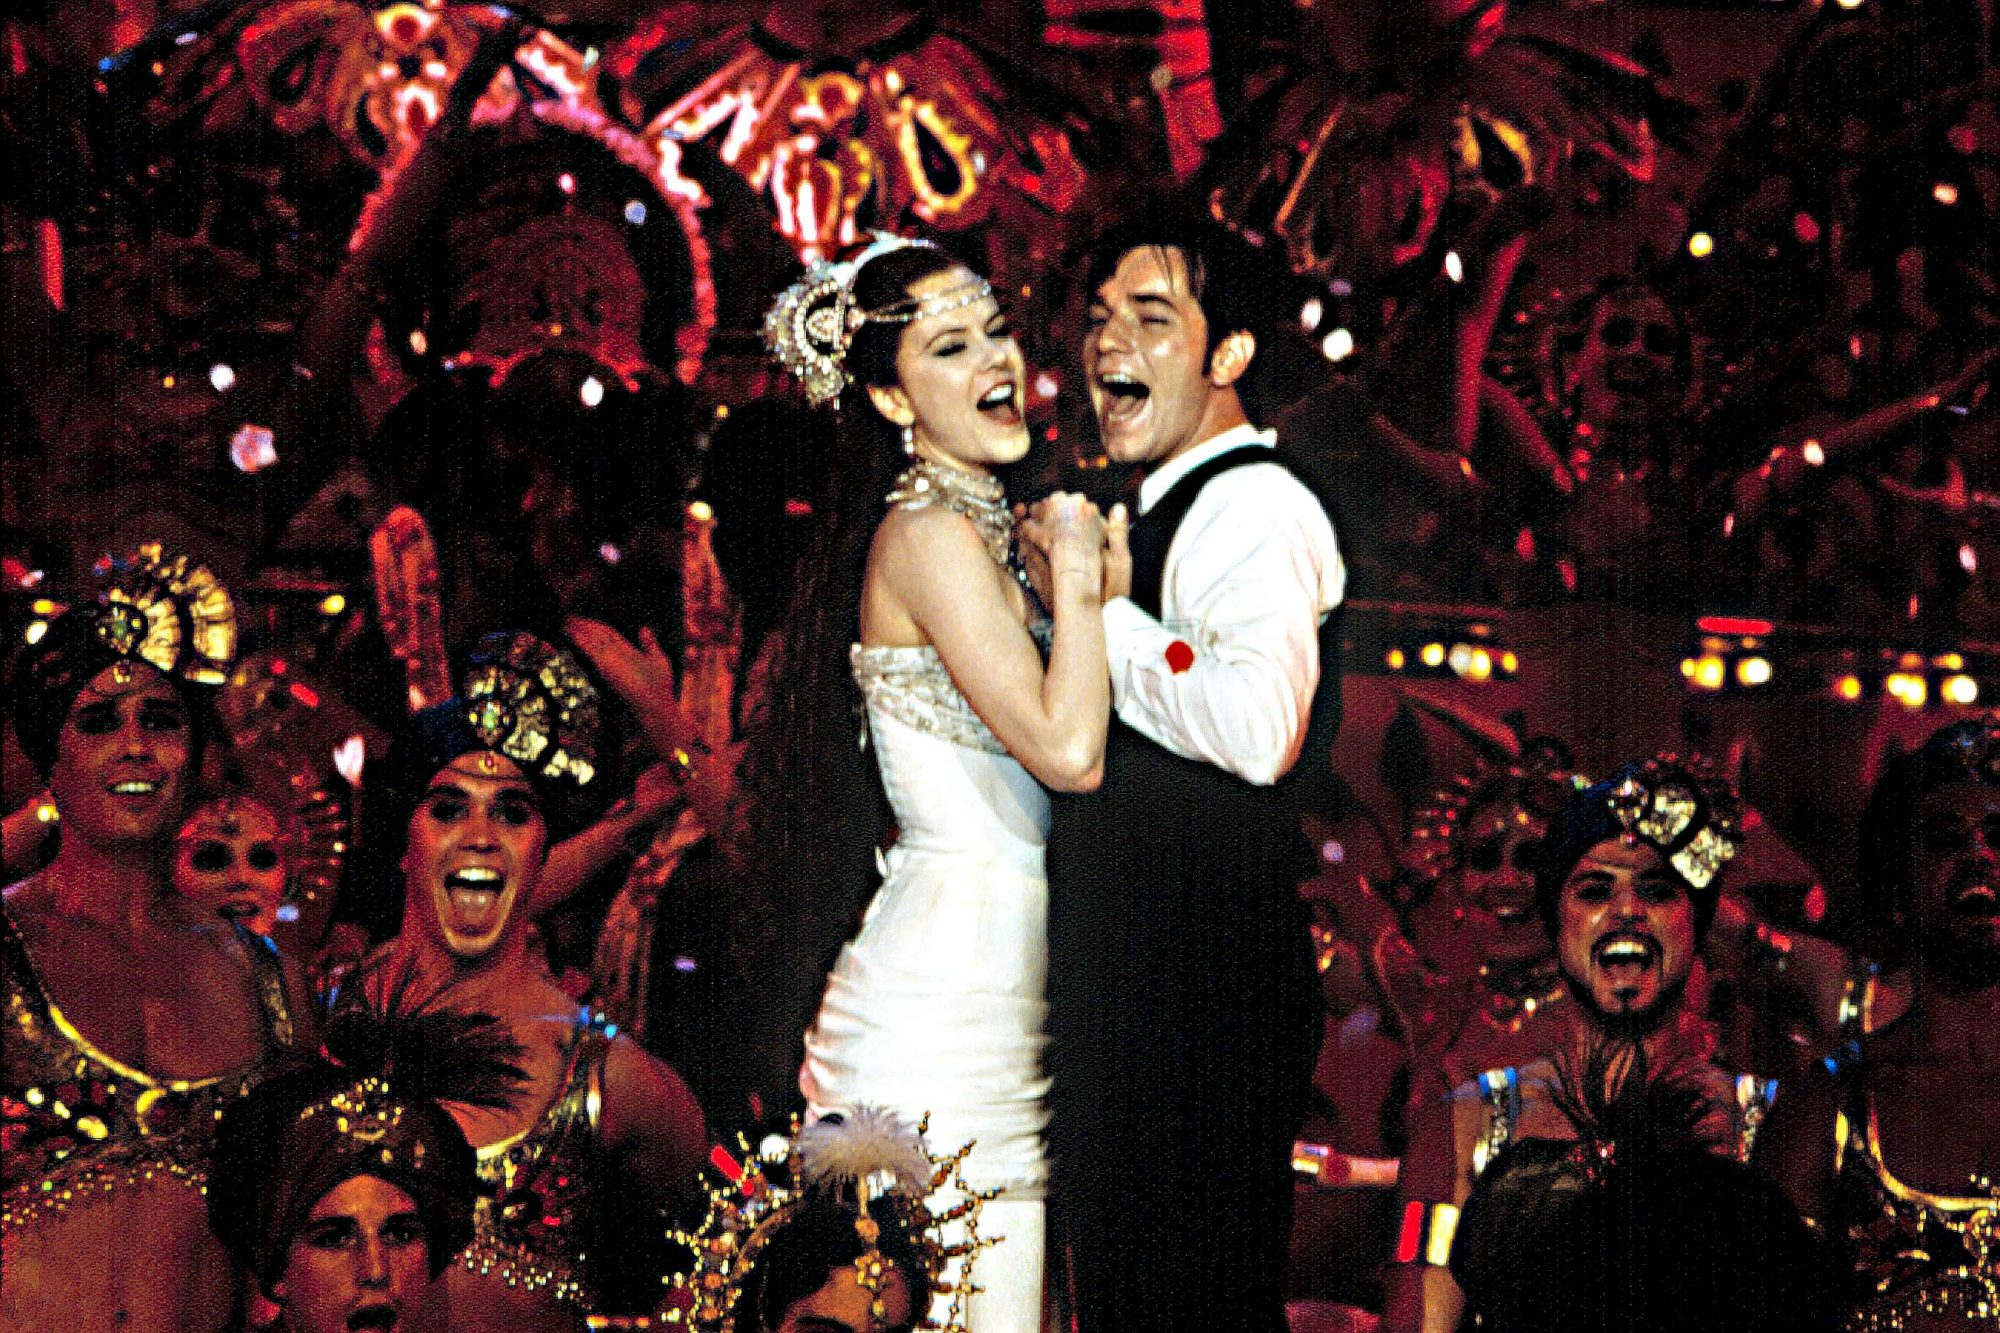 MOULIN ROUGE!, Nicole Kidman, Ewan McGregor, 2001, TM & Copyright (c) 20th Century Fox Film Corp. Al